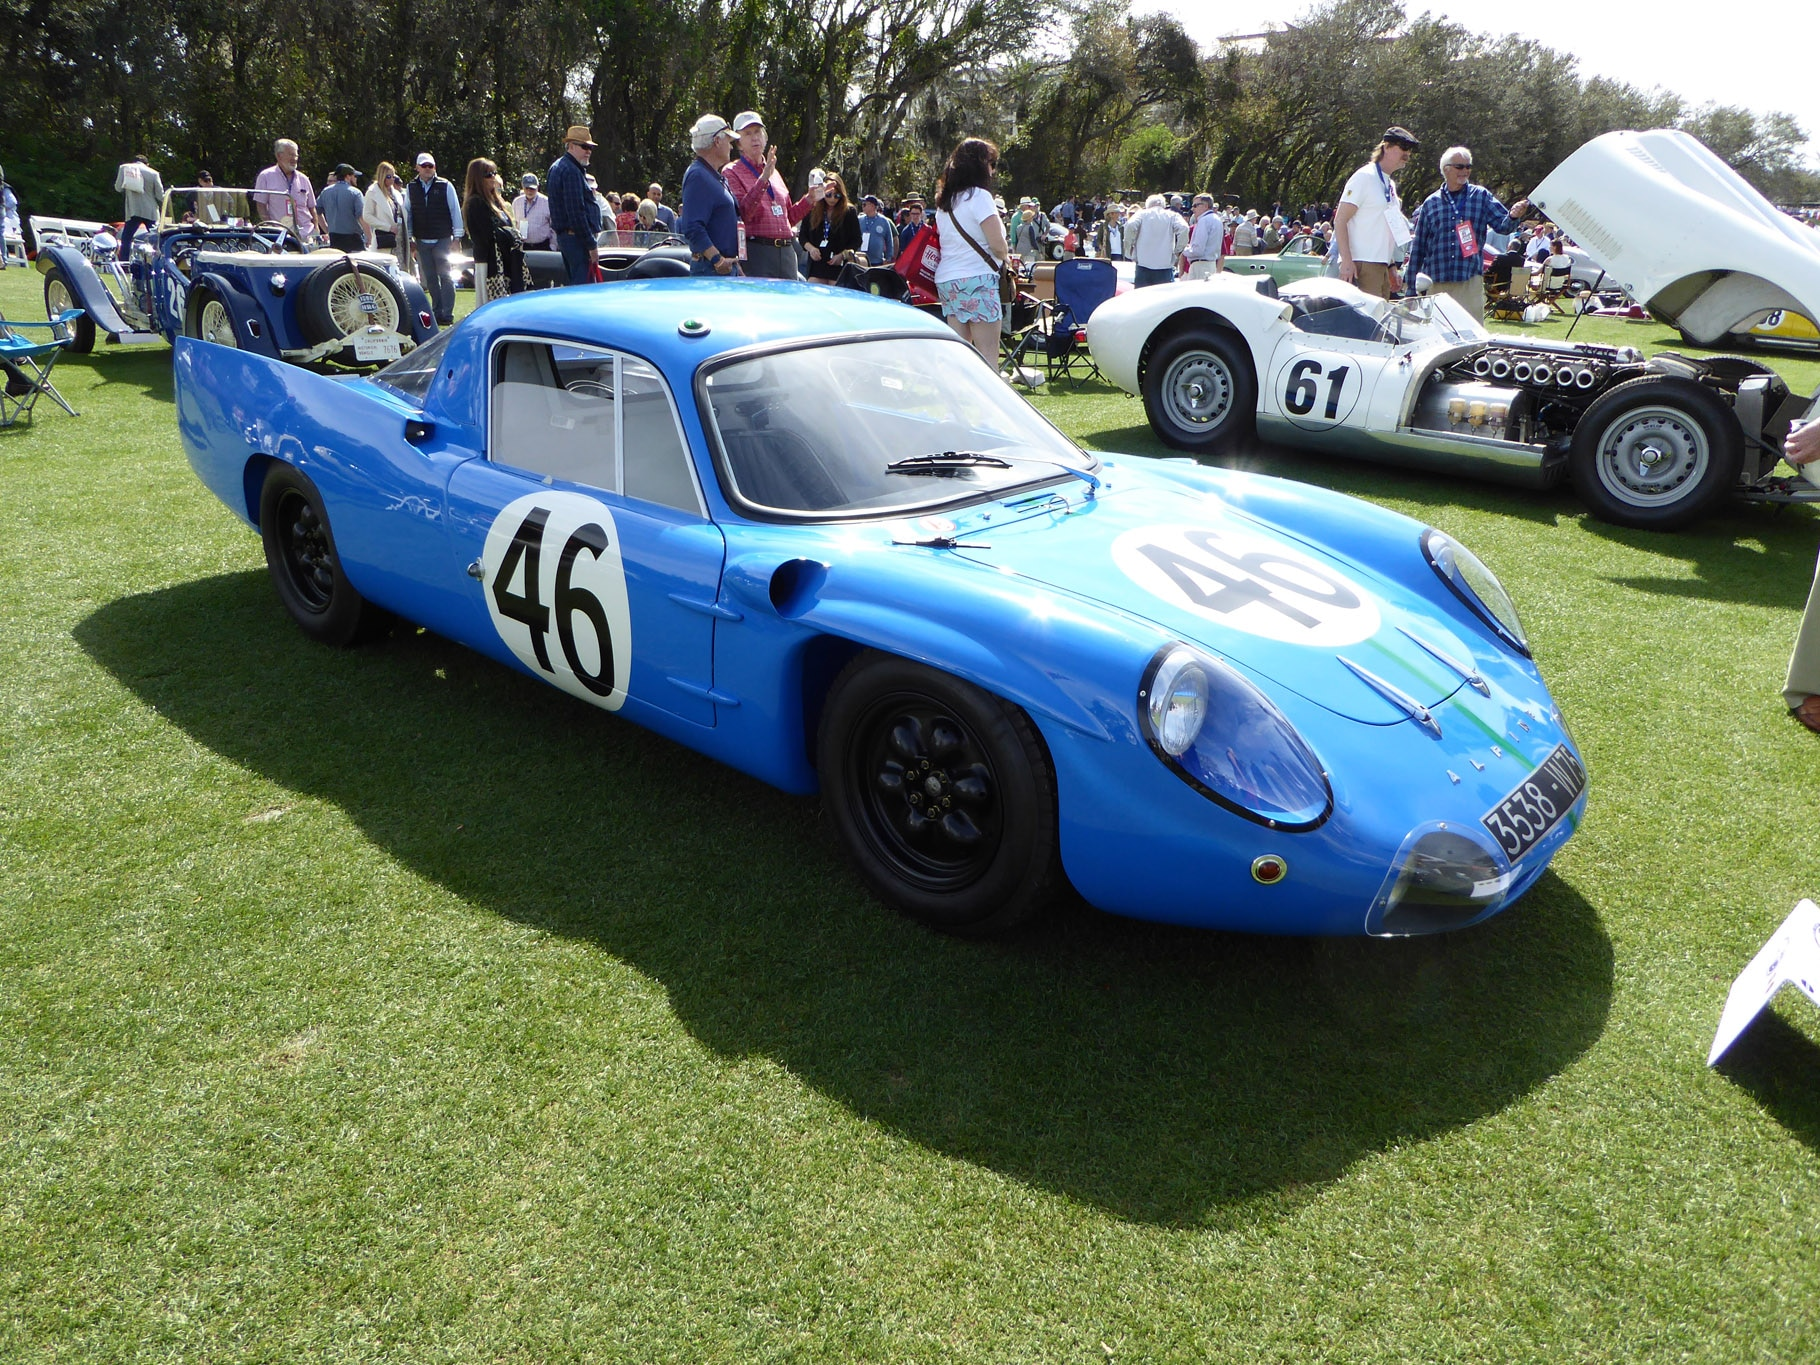 11 amazing cars from the 2018 amelia island concours d elegance automobile magazine. Black Bedroom Furniture Sets. Home Design Ideas